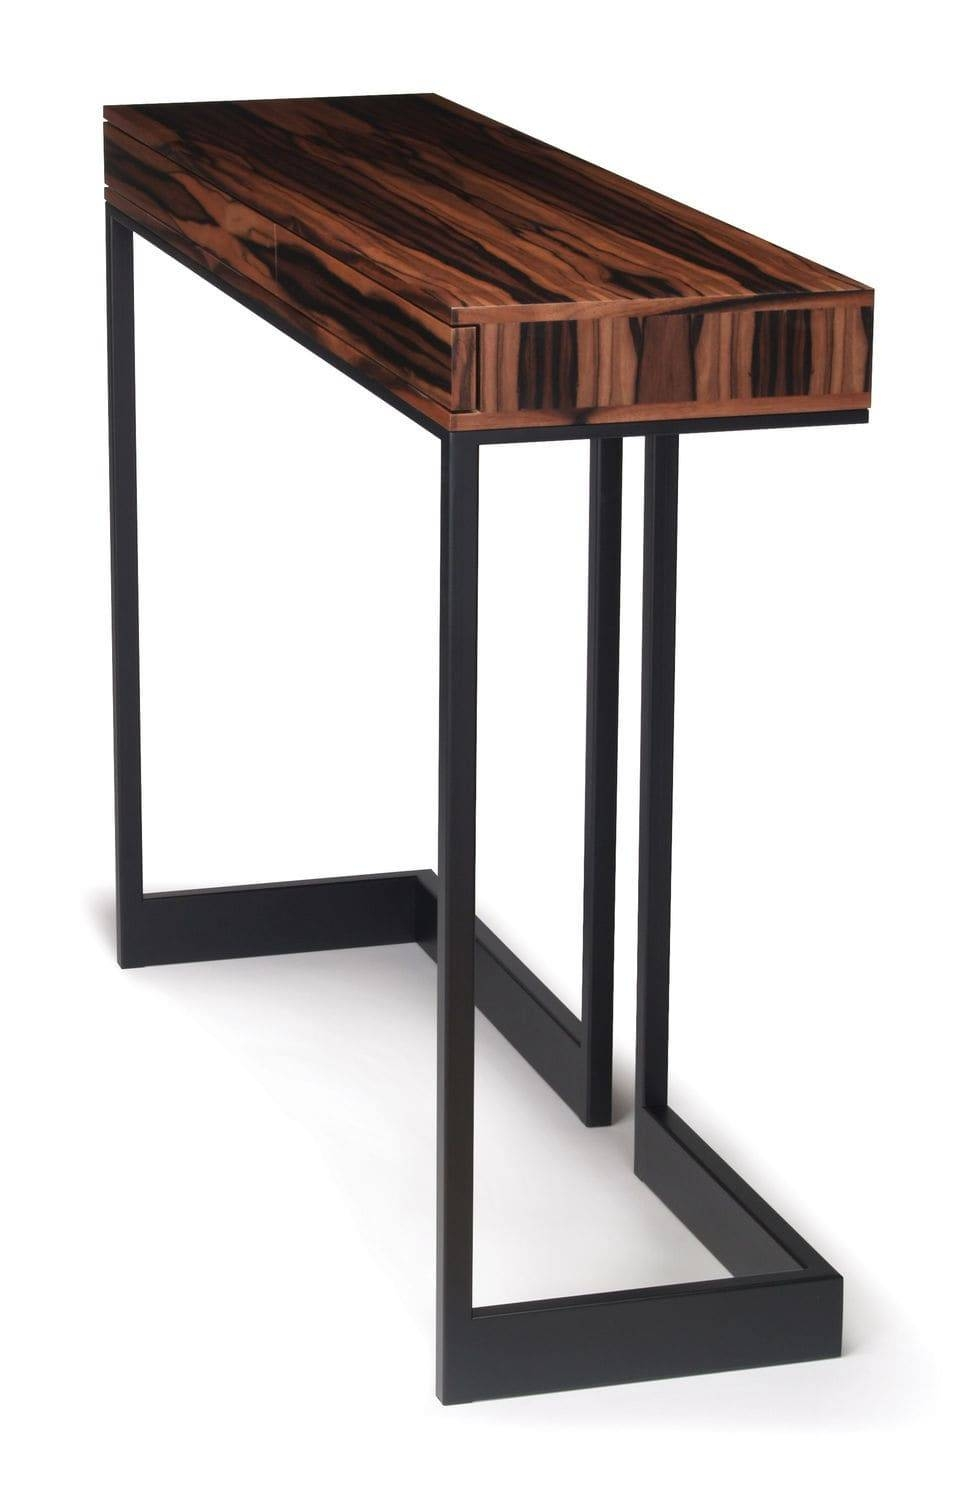 Contemporary Sideboard Table / Walnut / Beech / Ash - Wishbone regarding Sideboard Tables (Image 4 of 15)